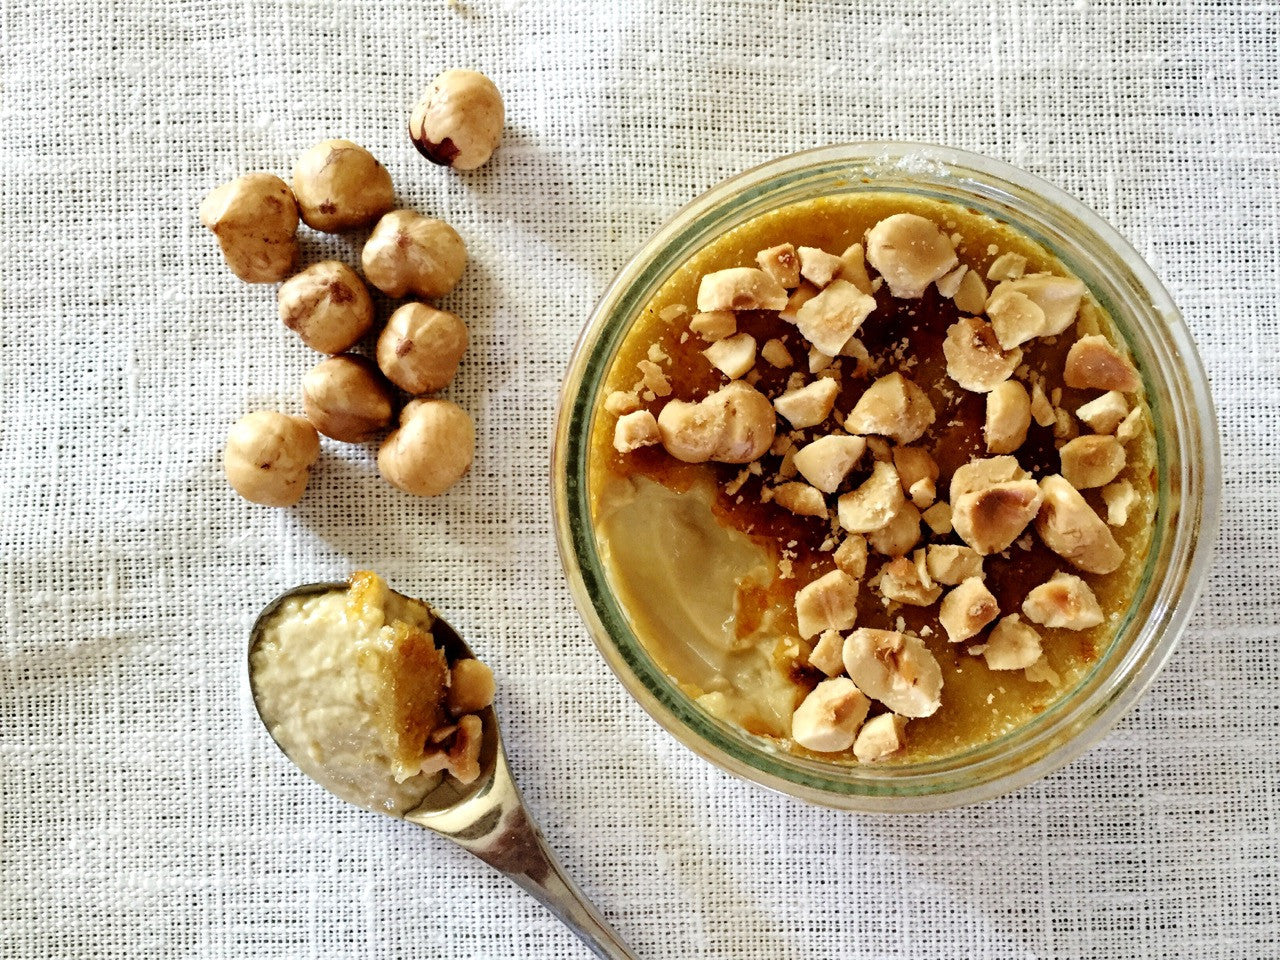 Espresso Creme Brûlée with Toasted Hazelnuts